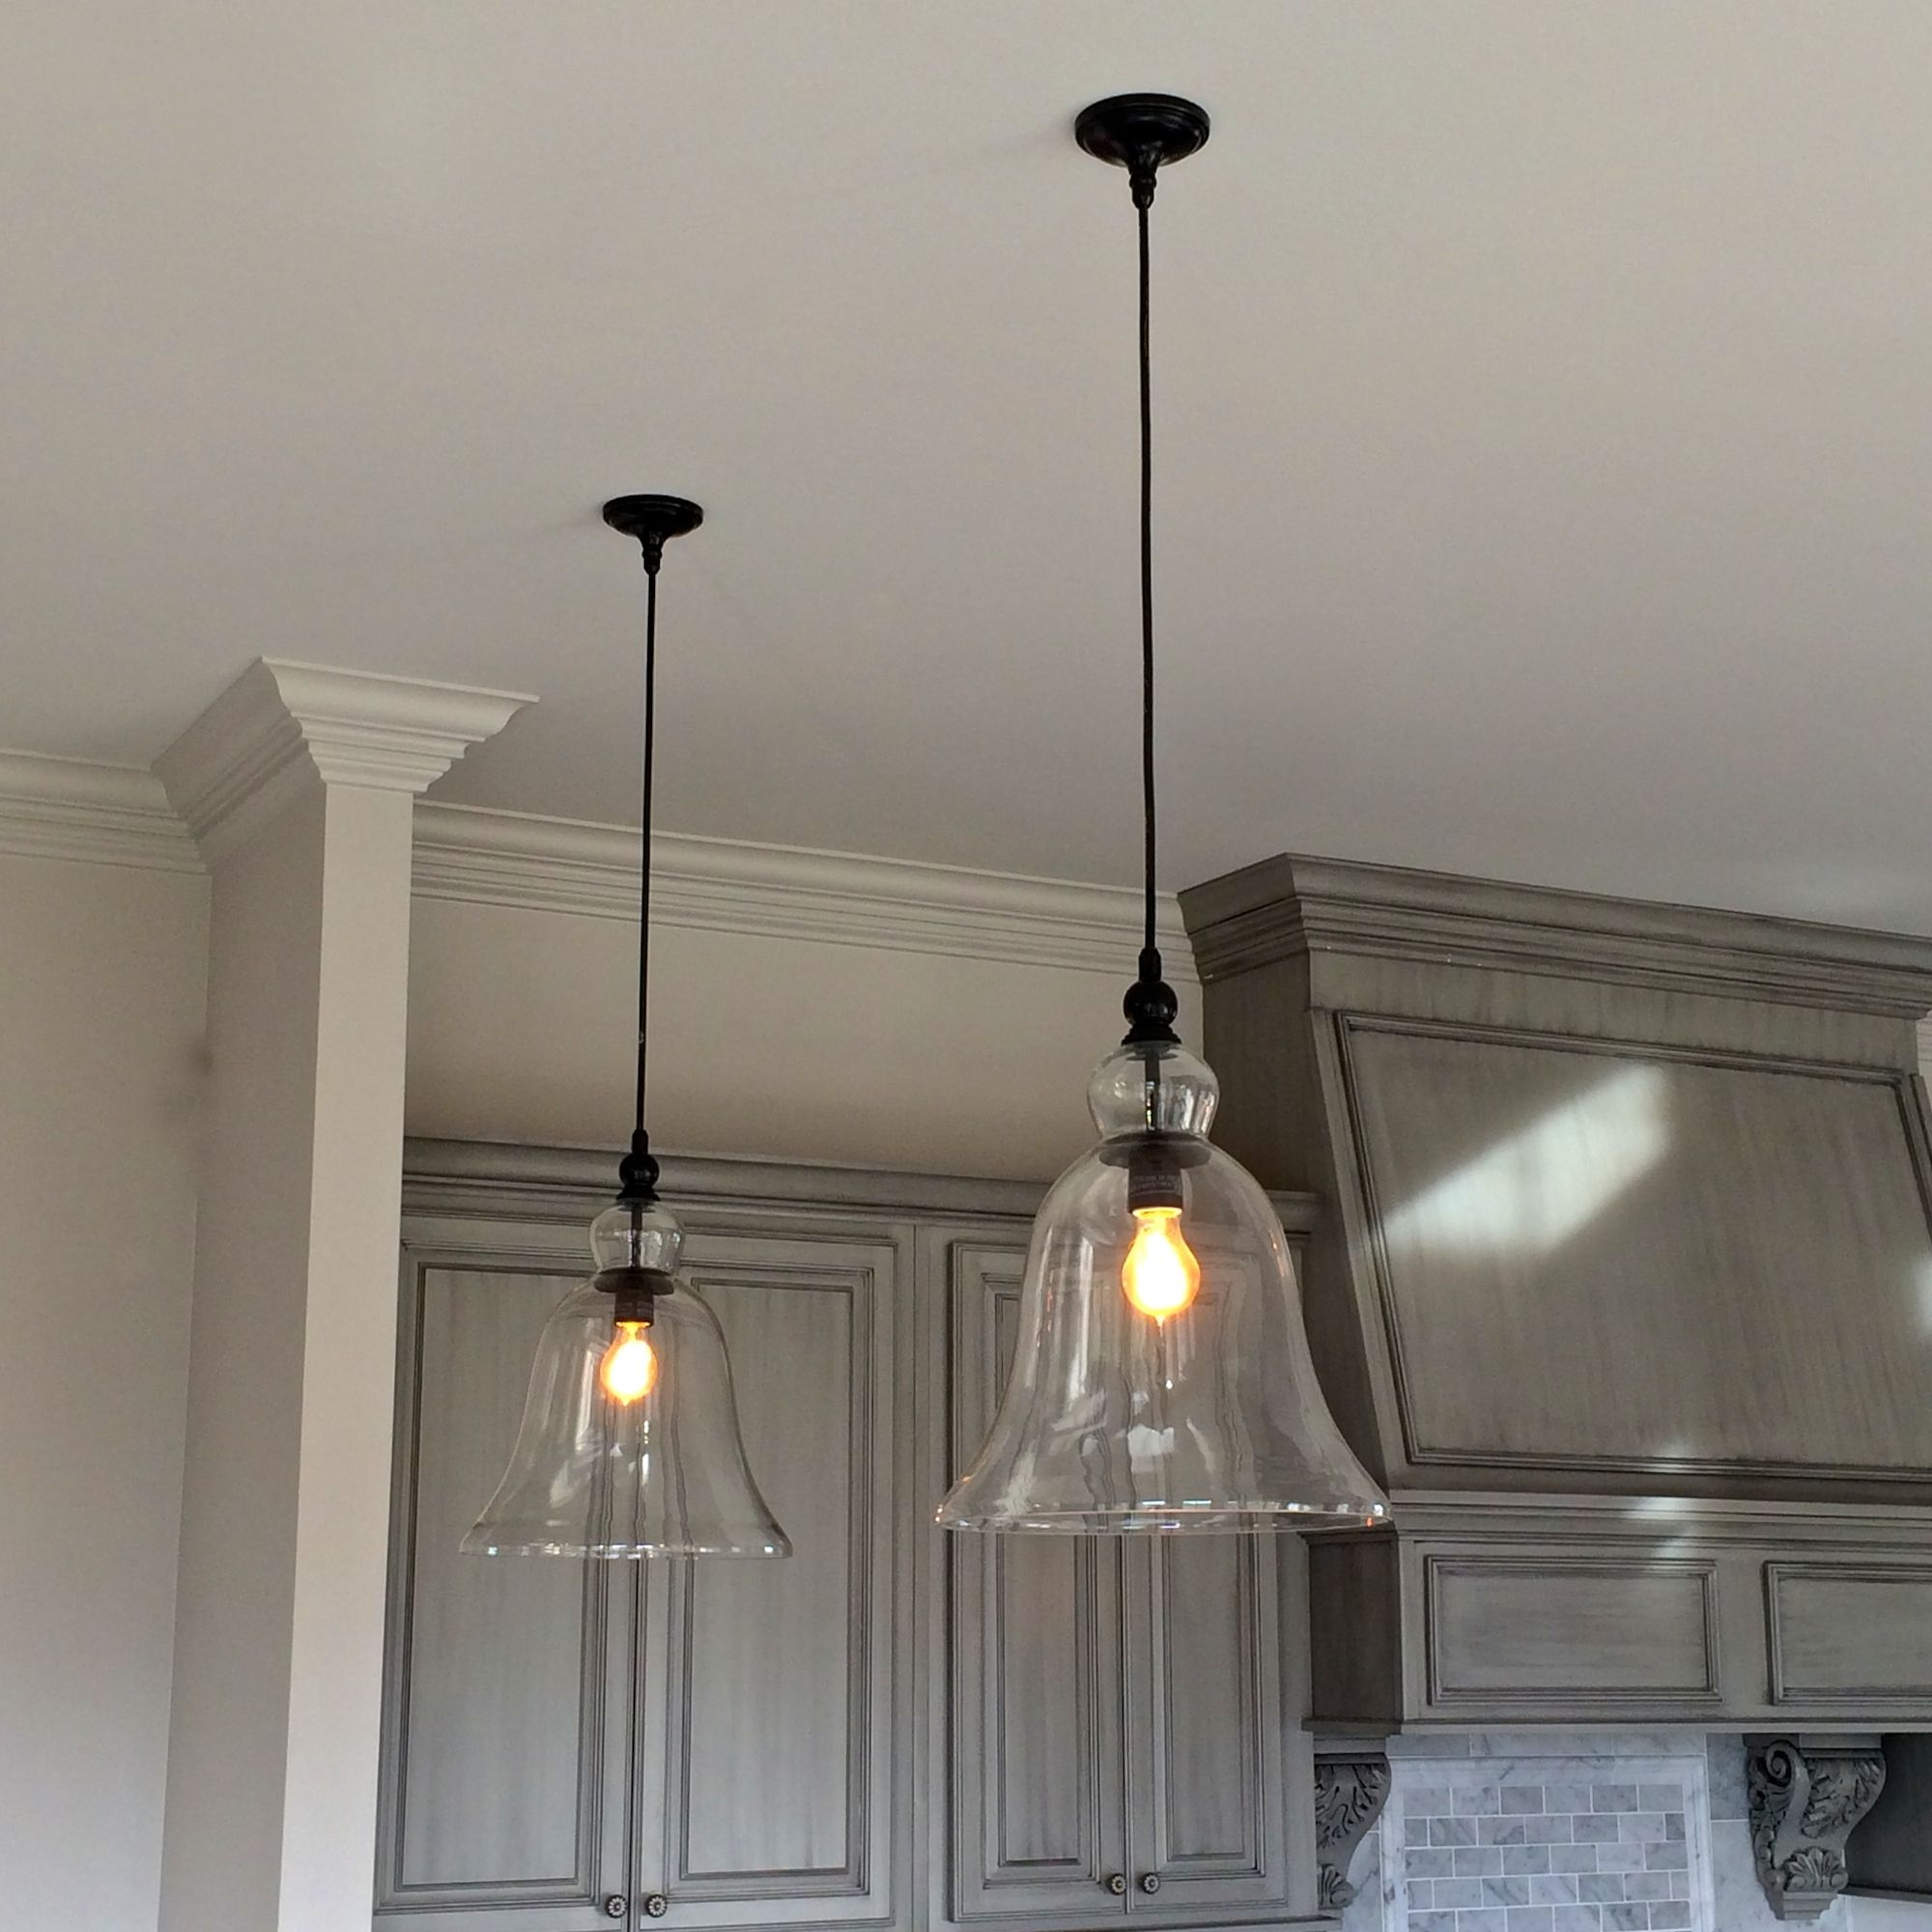 Kitchen Pendant Lighting Glass Above Kitchen Counter Large Glass Bell Hanging Pendant